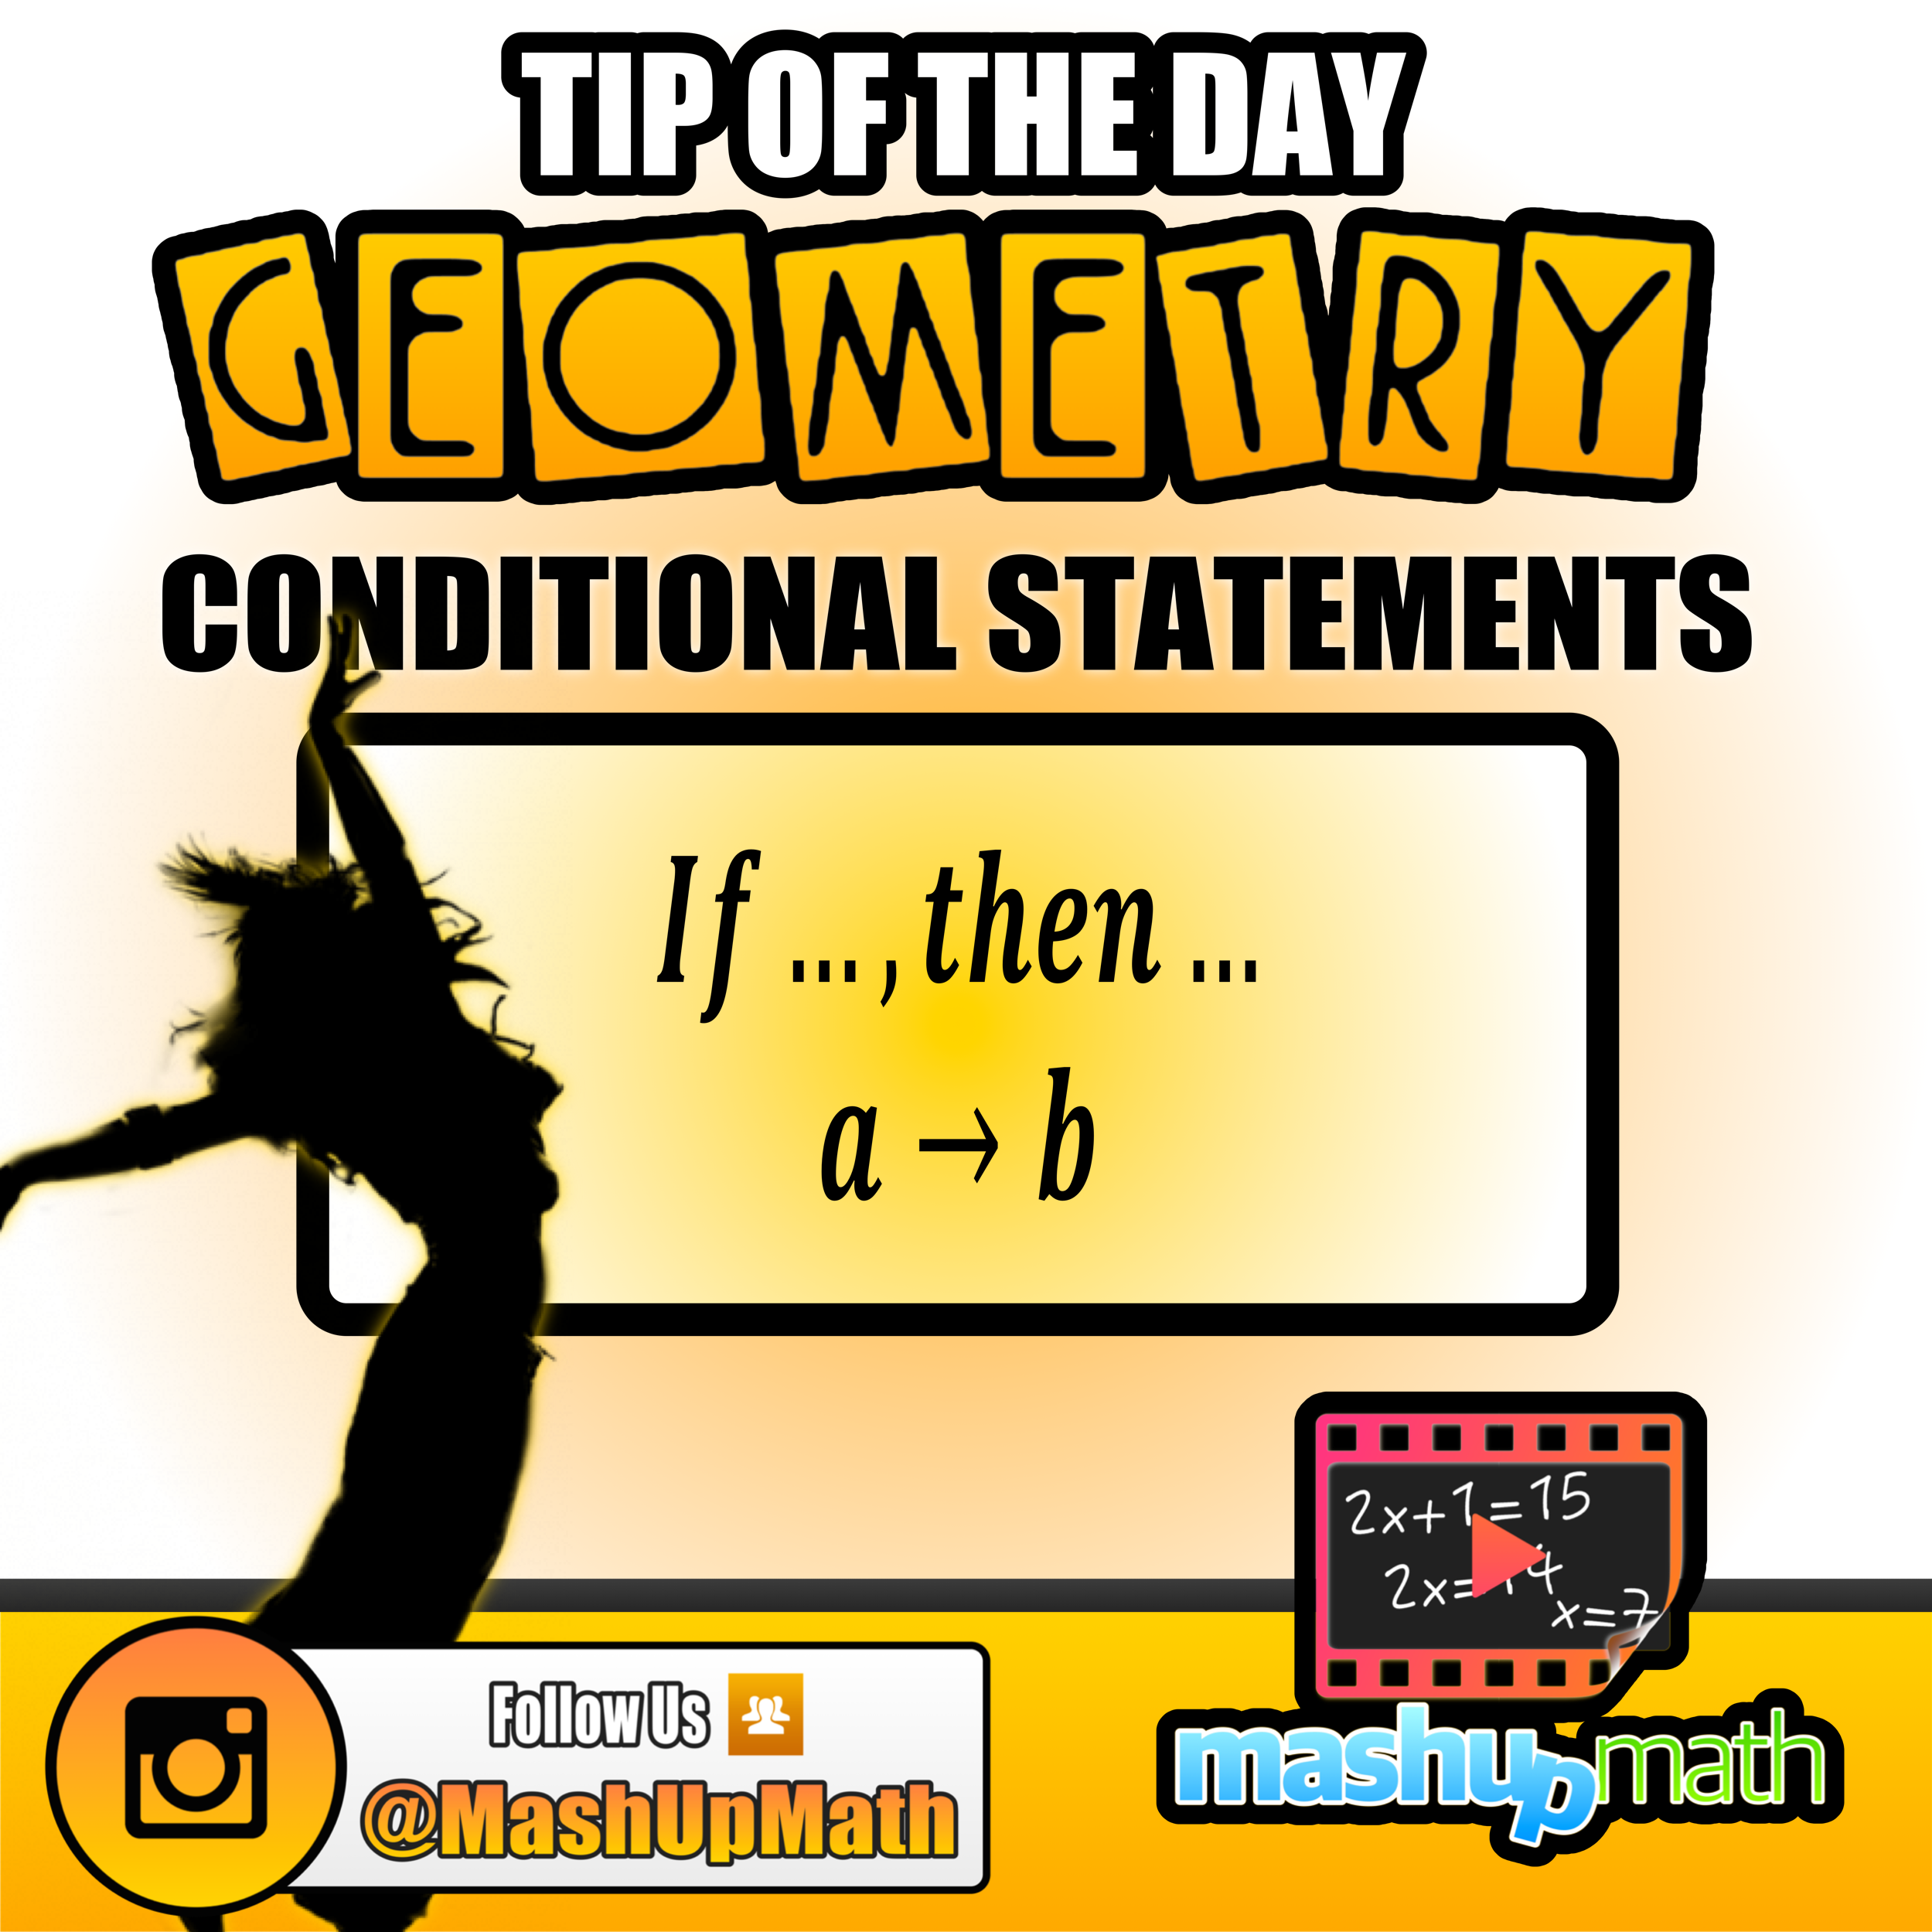 For More Common Core Inspired Daily Math Tips Follow